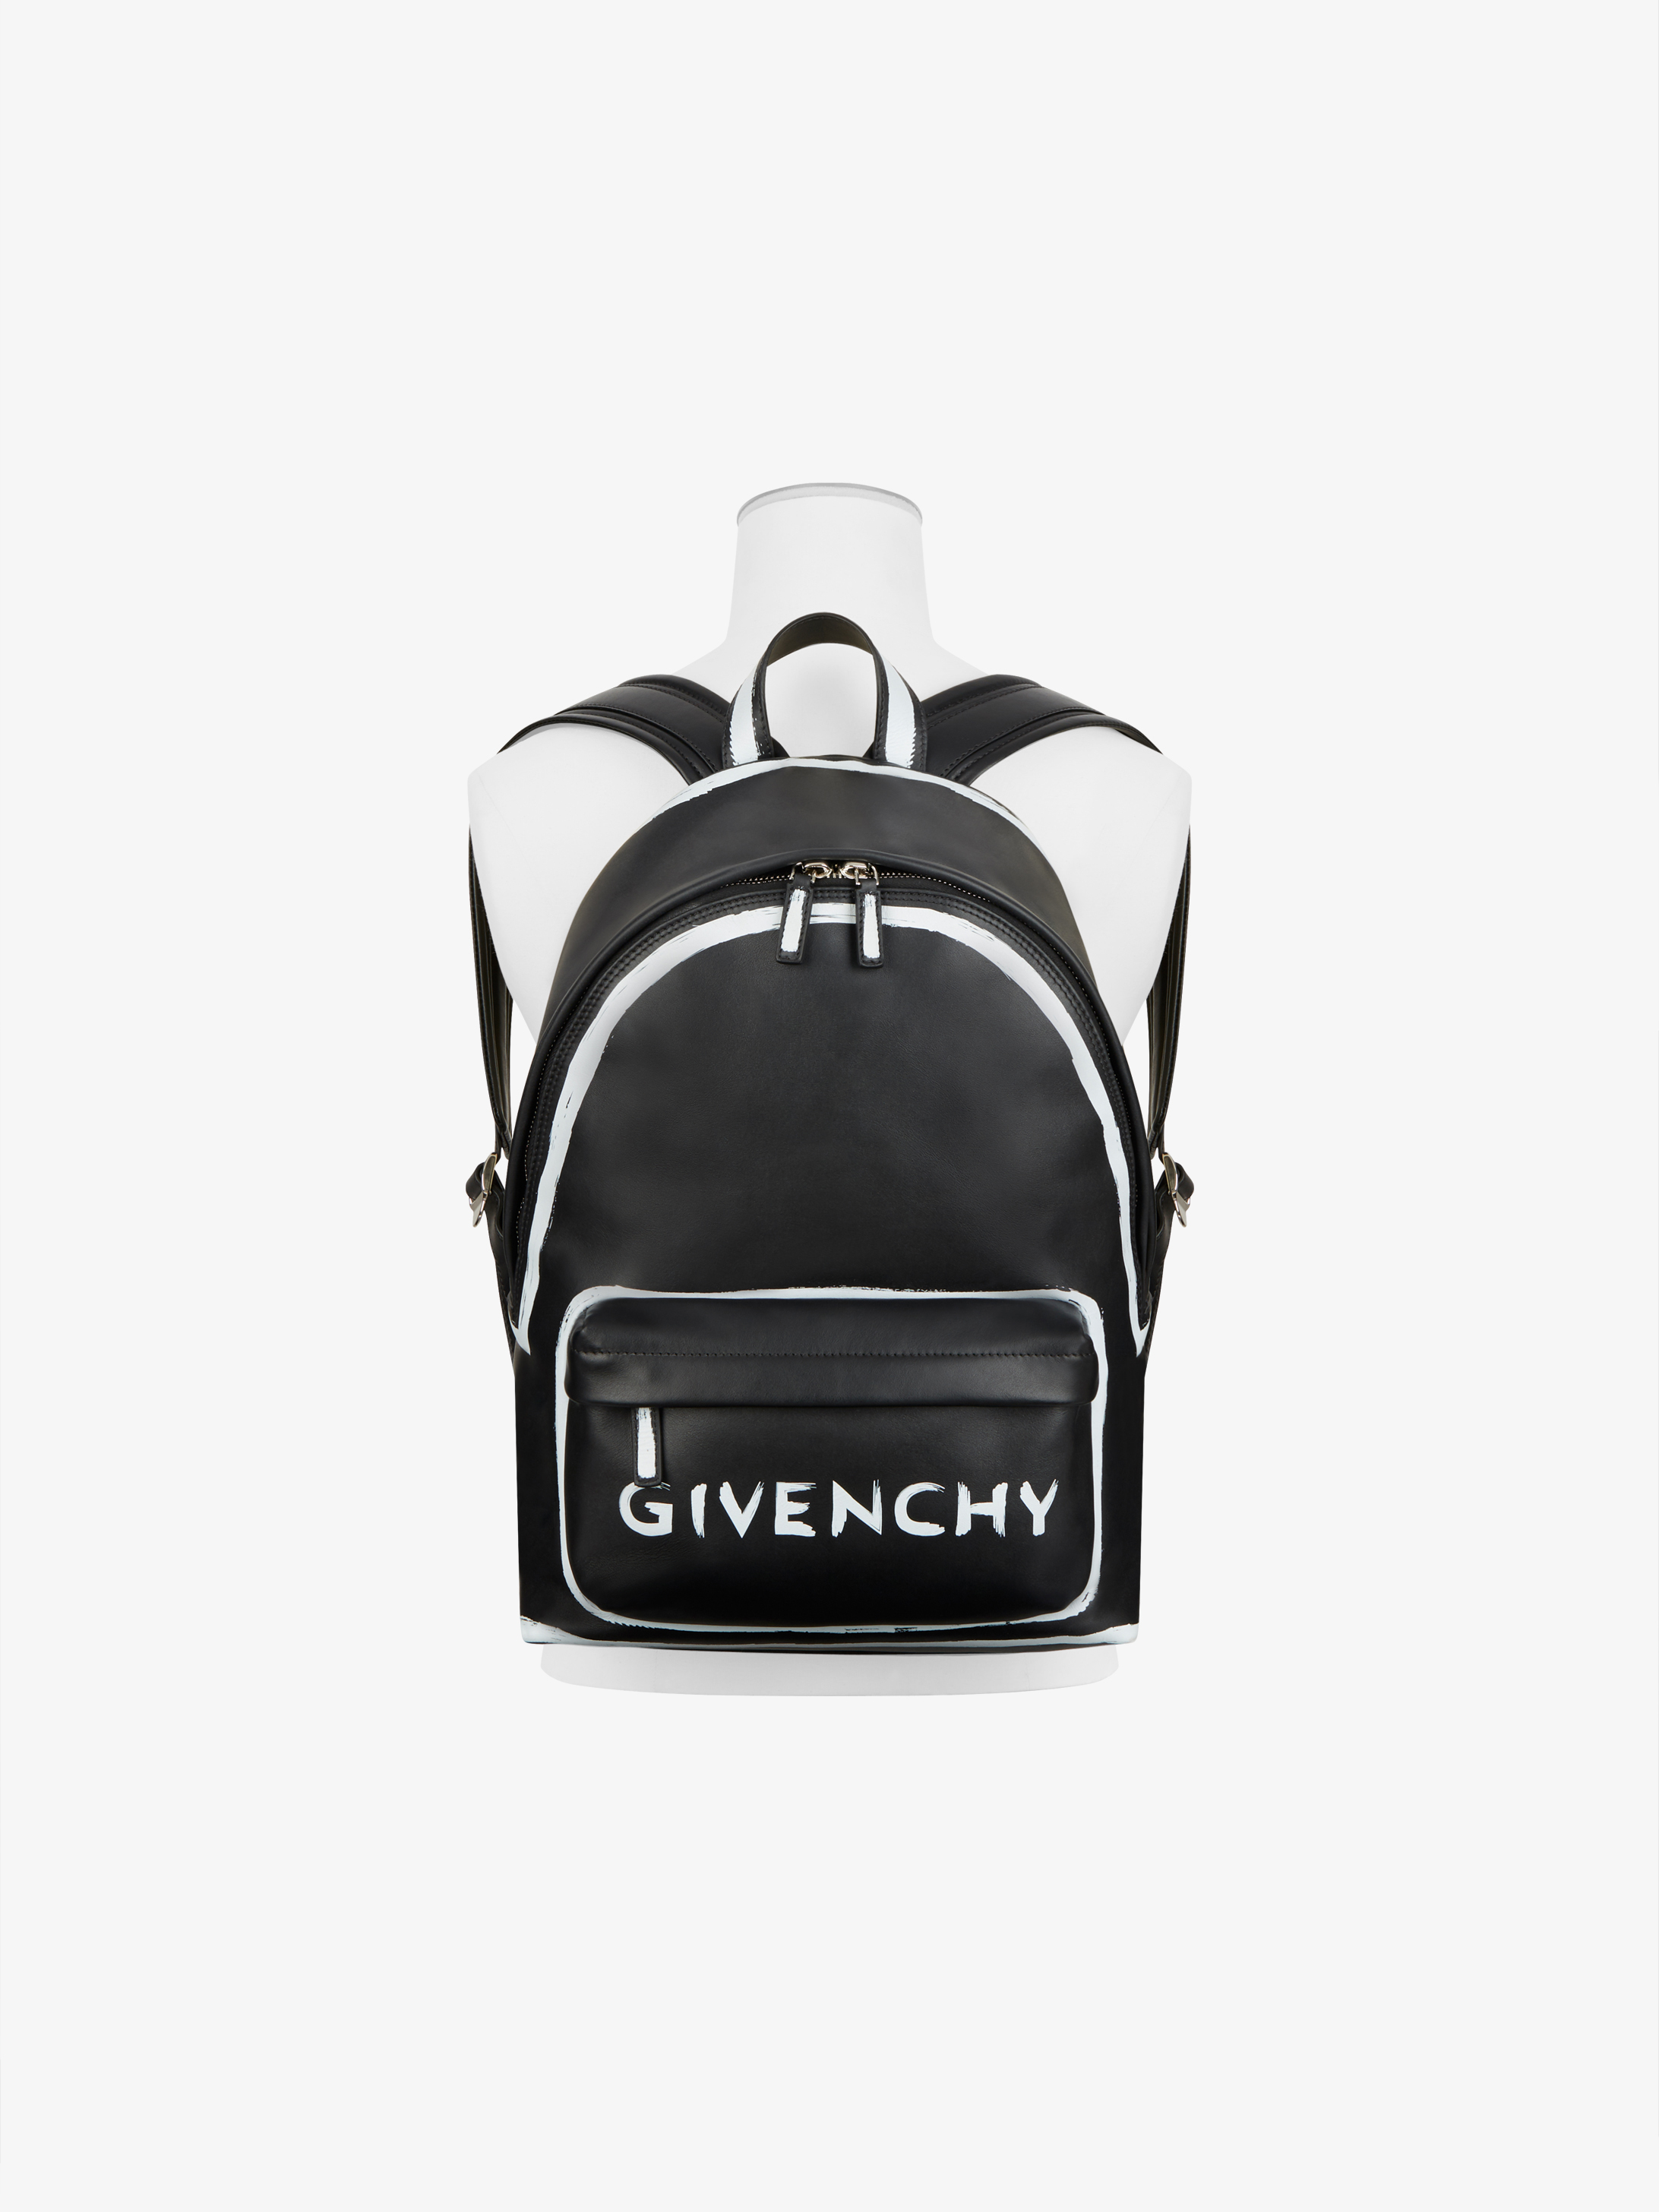 GIVENCHY small backpack in leather